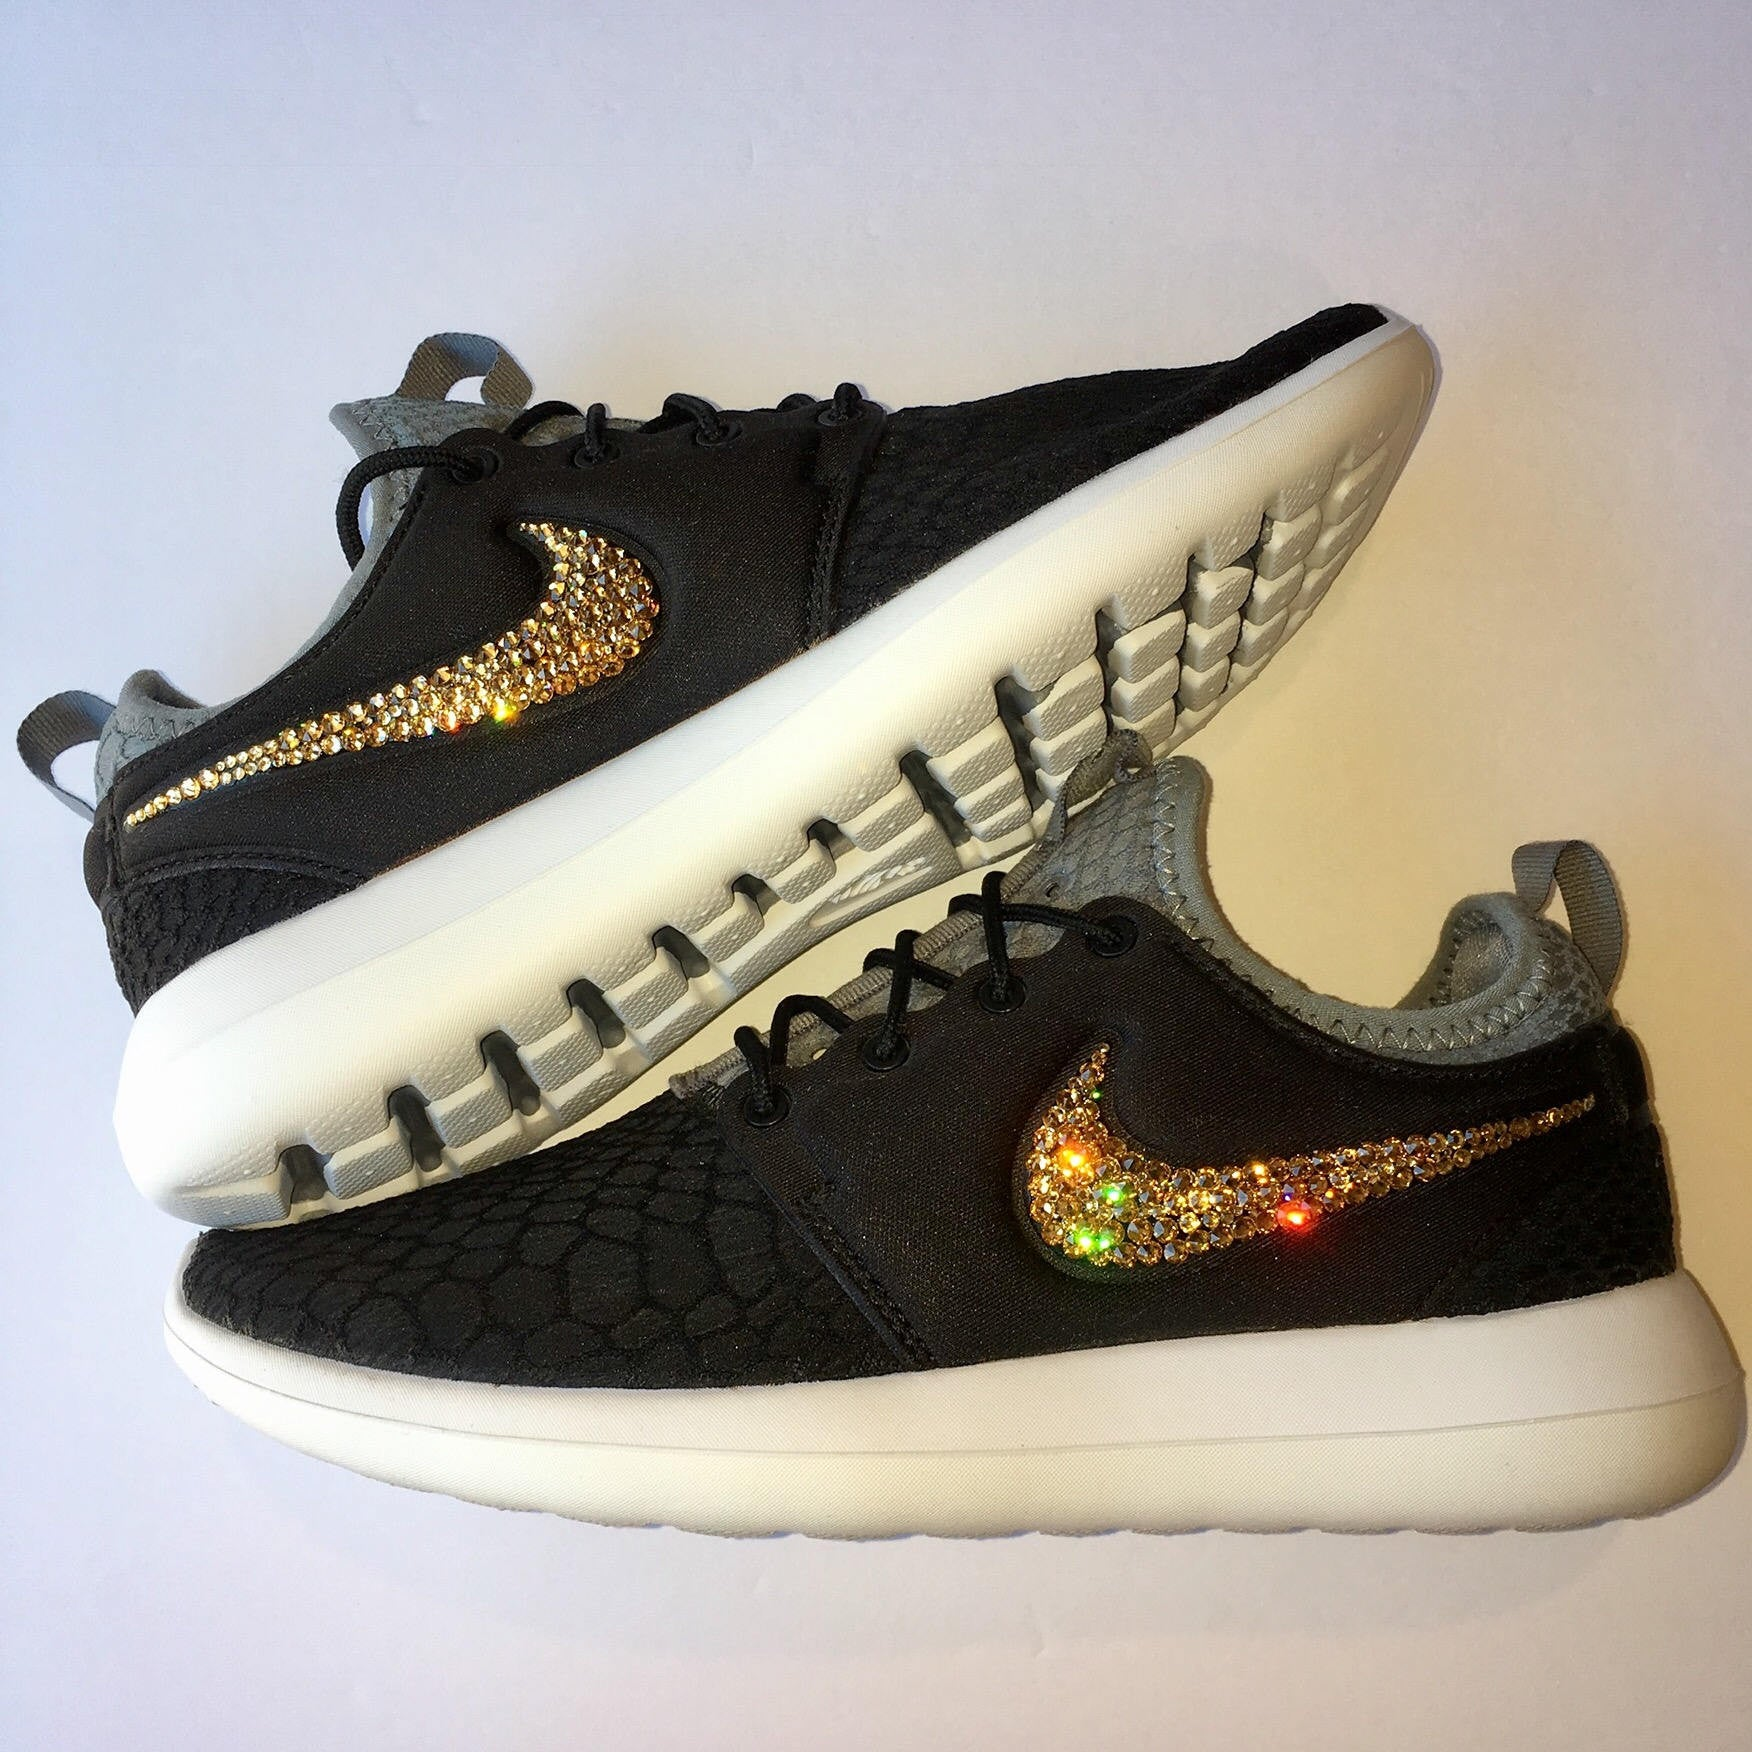 3f85f2cb802e0 ... Bling Nike Roshe Two SE Shoes with Swarovski Crystals   Black   Gold    Bedazzled Authentic ...